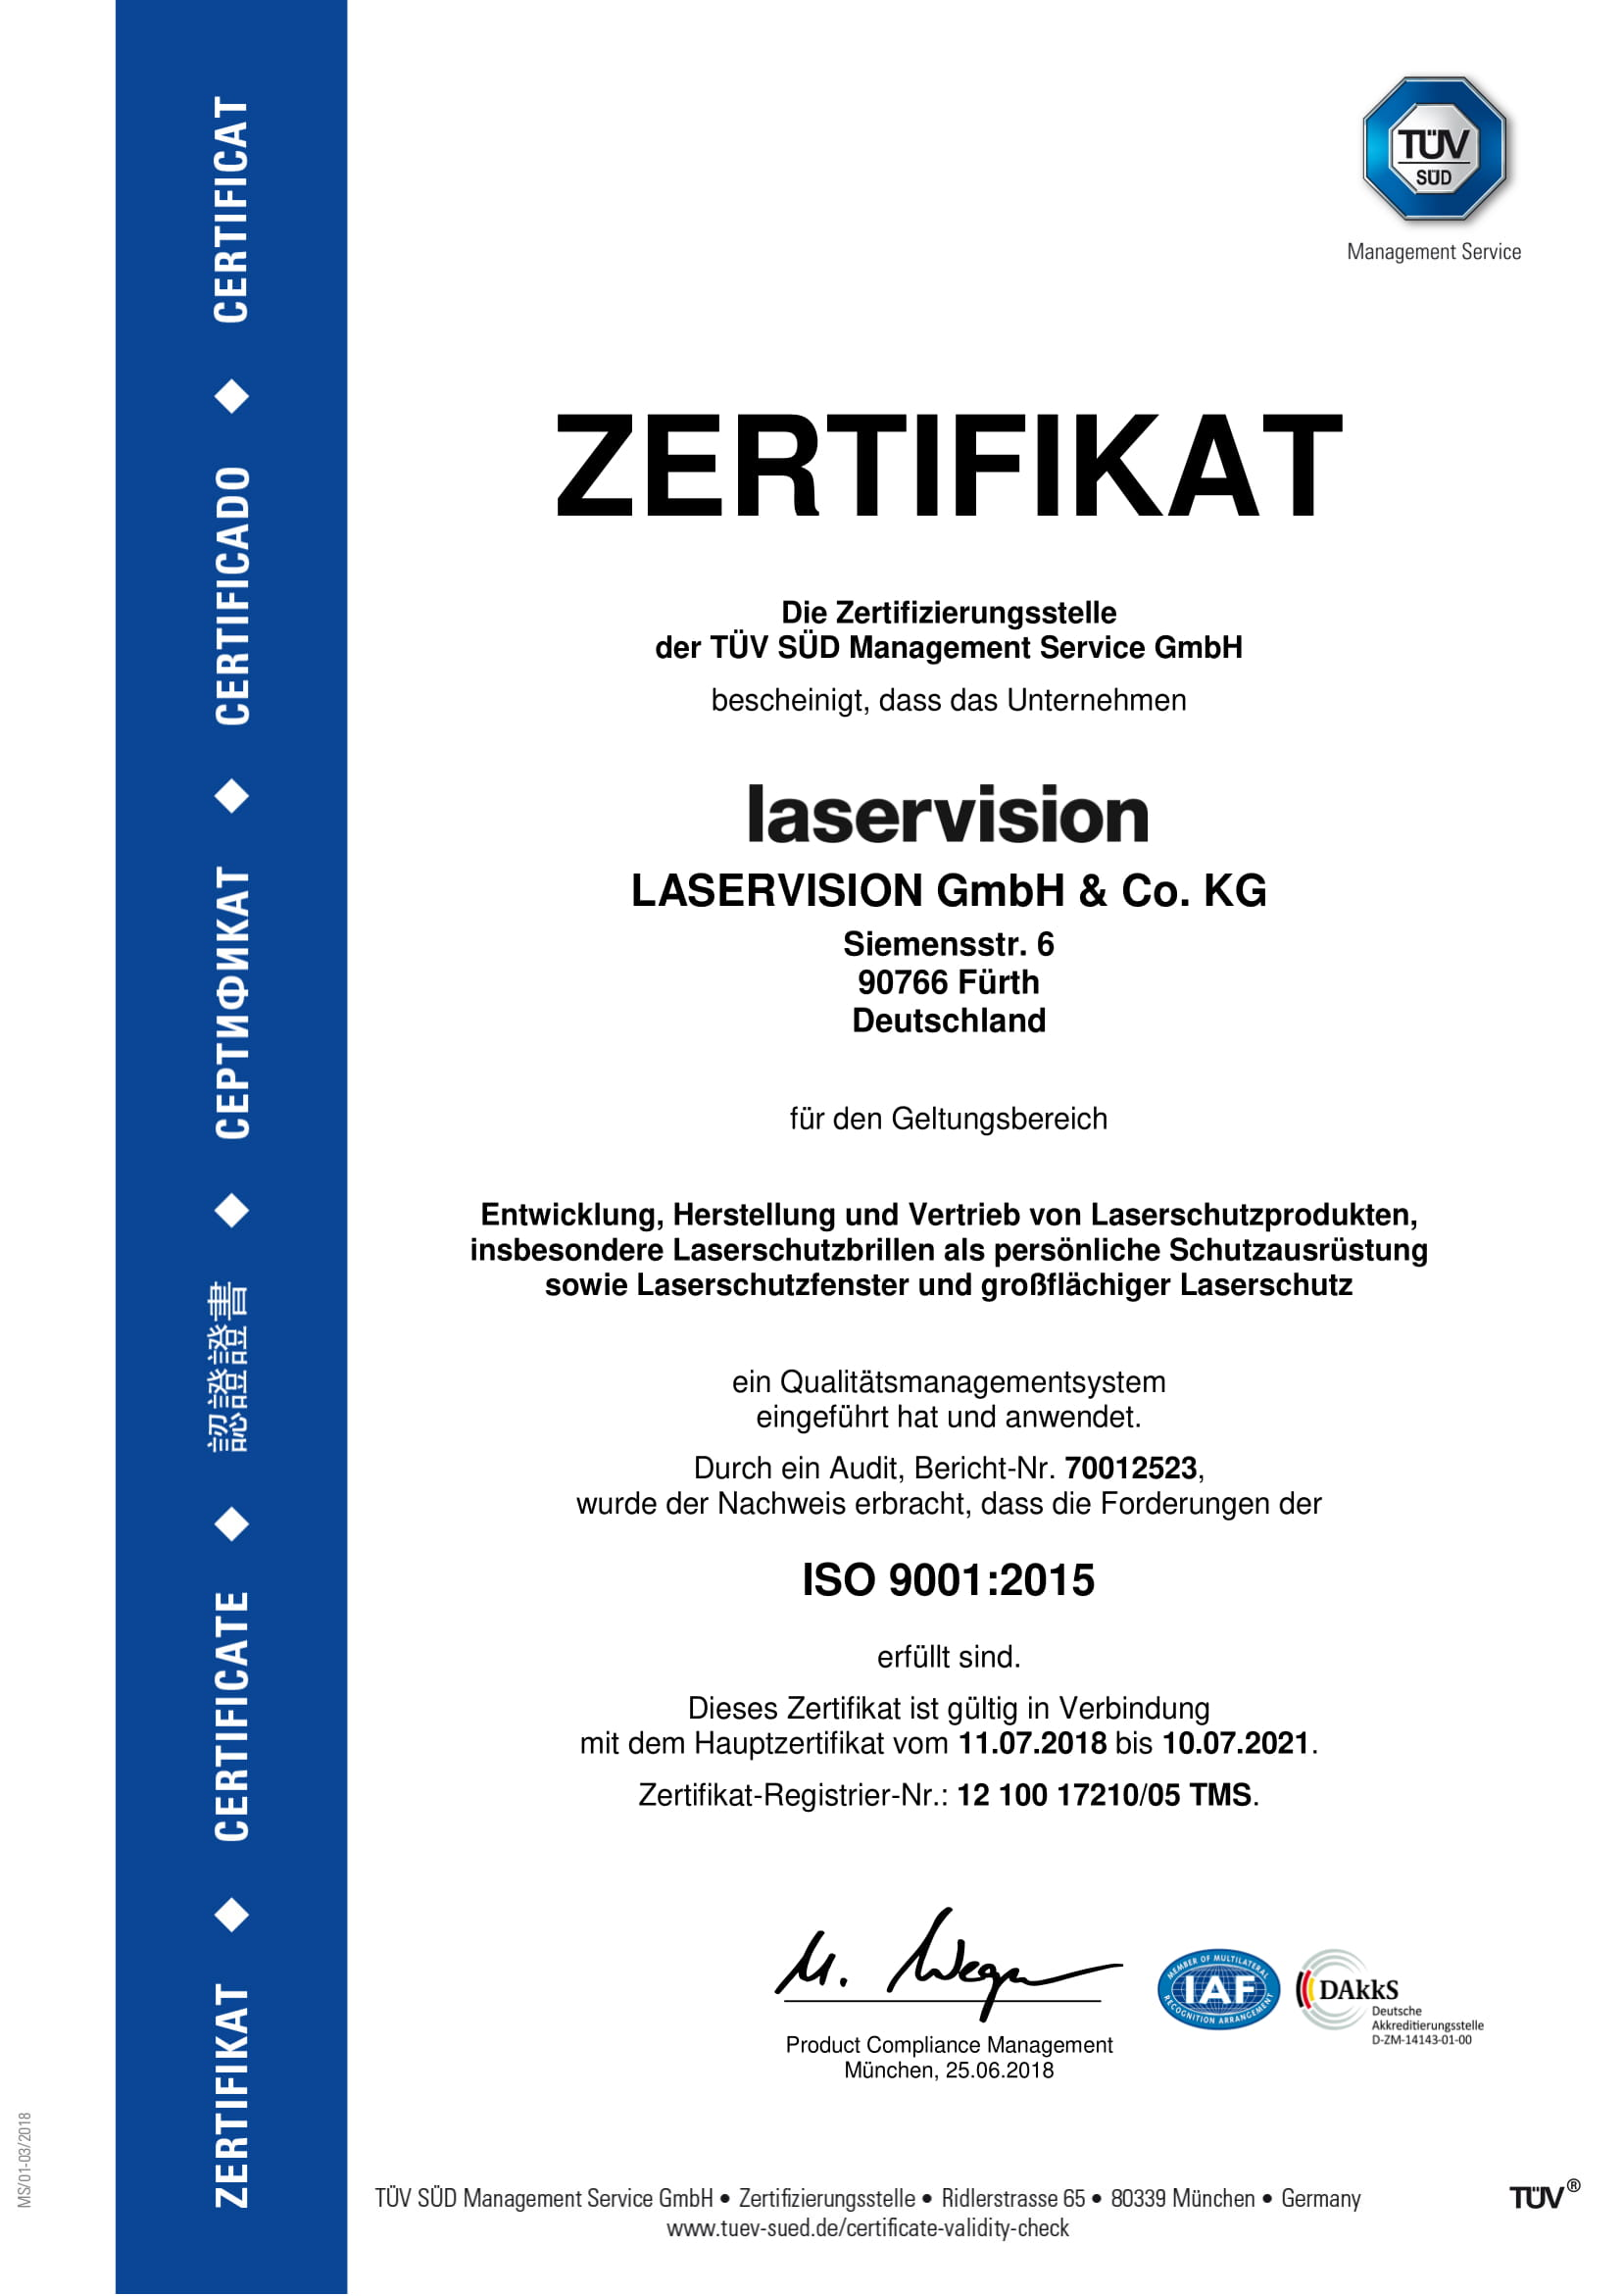 ISO 9001:2008 re-certified